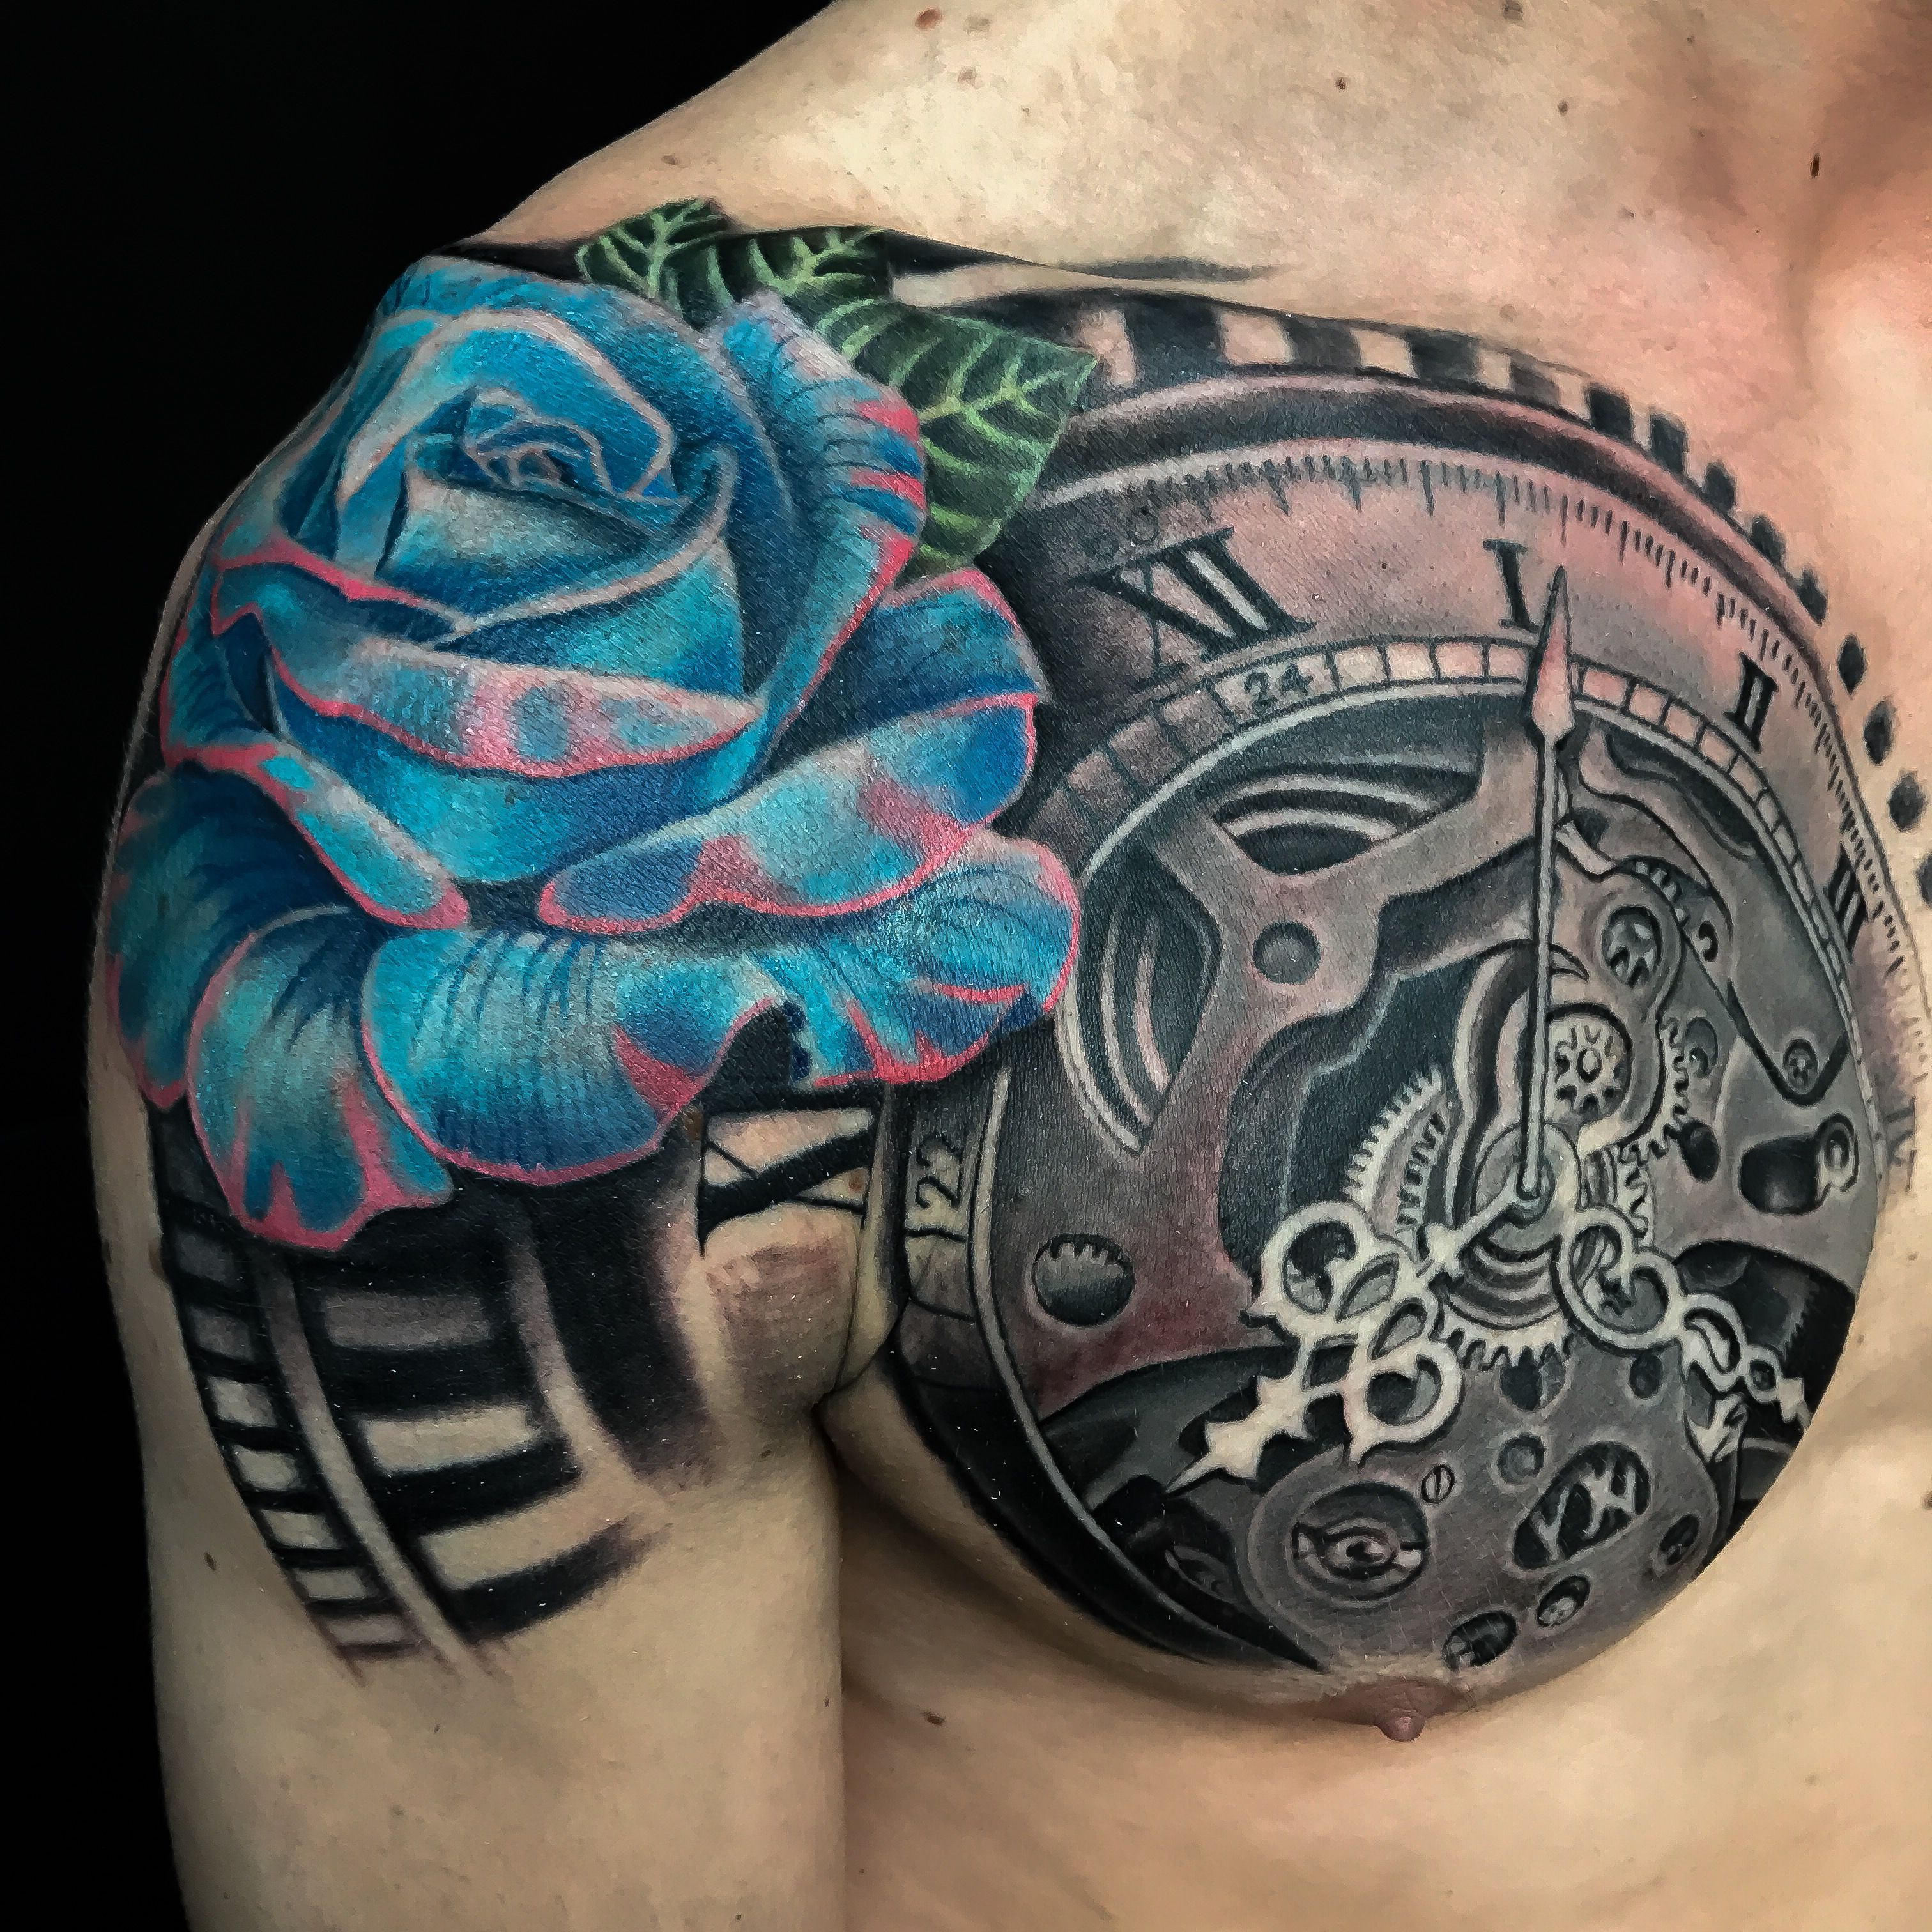 Pin By Eli Perez On Tattoos In 2020 Sleeve Tattoos Rose Chest Tattoo Rose Tattoo Sleeve